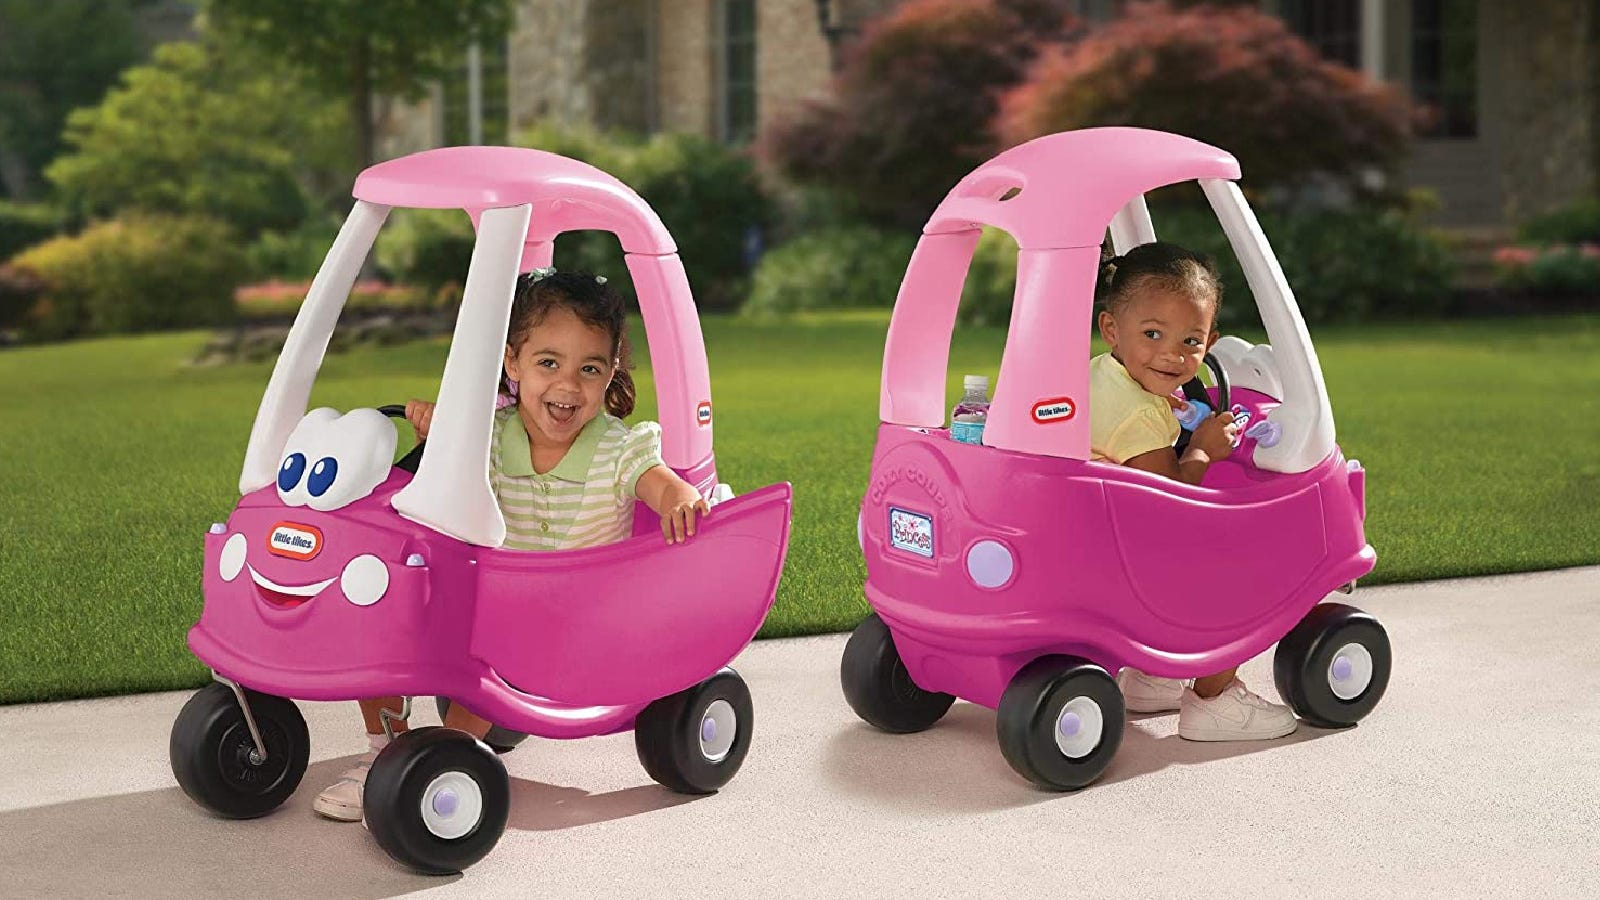 Two young girls playing with their Little Tikes Princess Buggies.